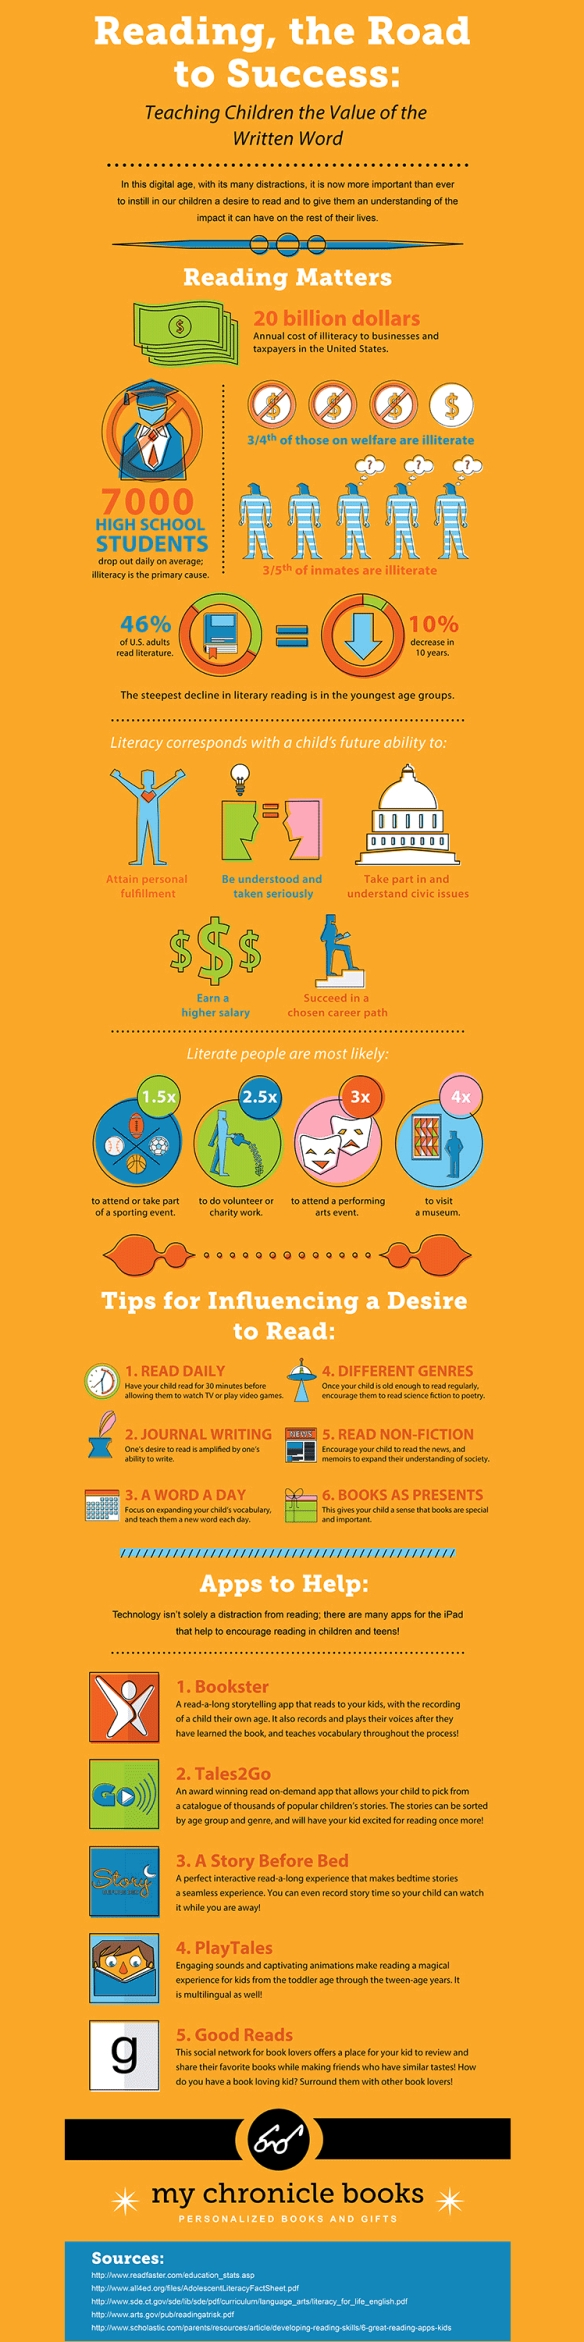 Reading-is-the-road-to-success-infographic